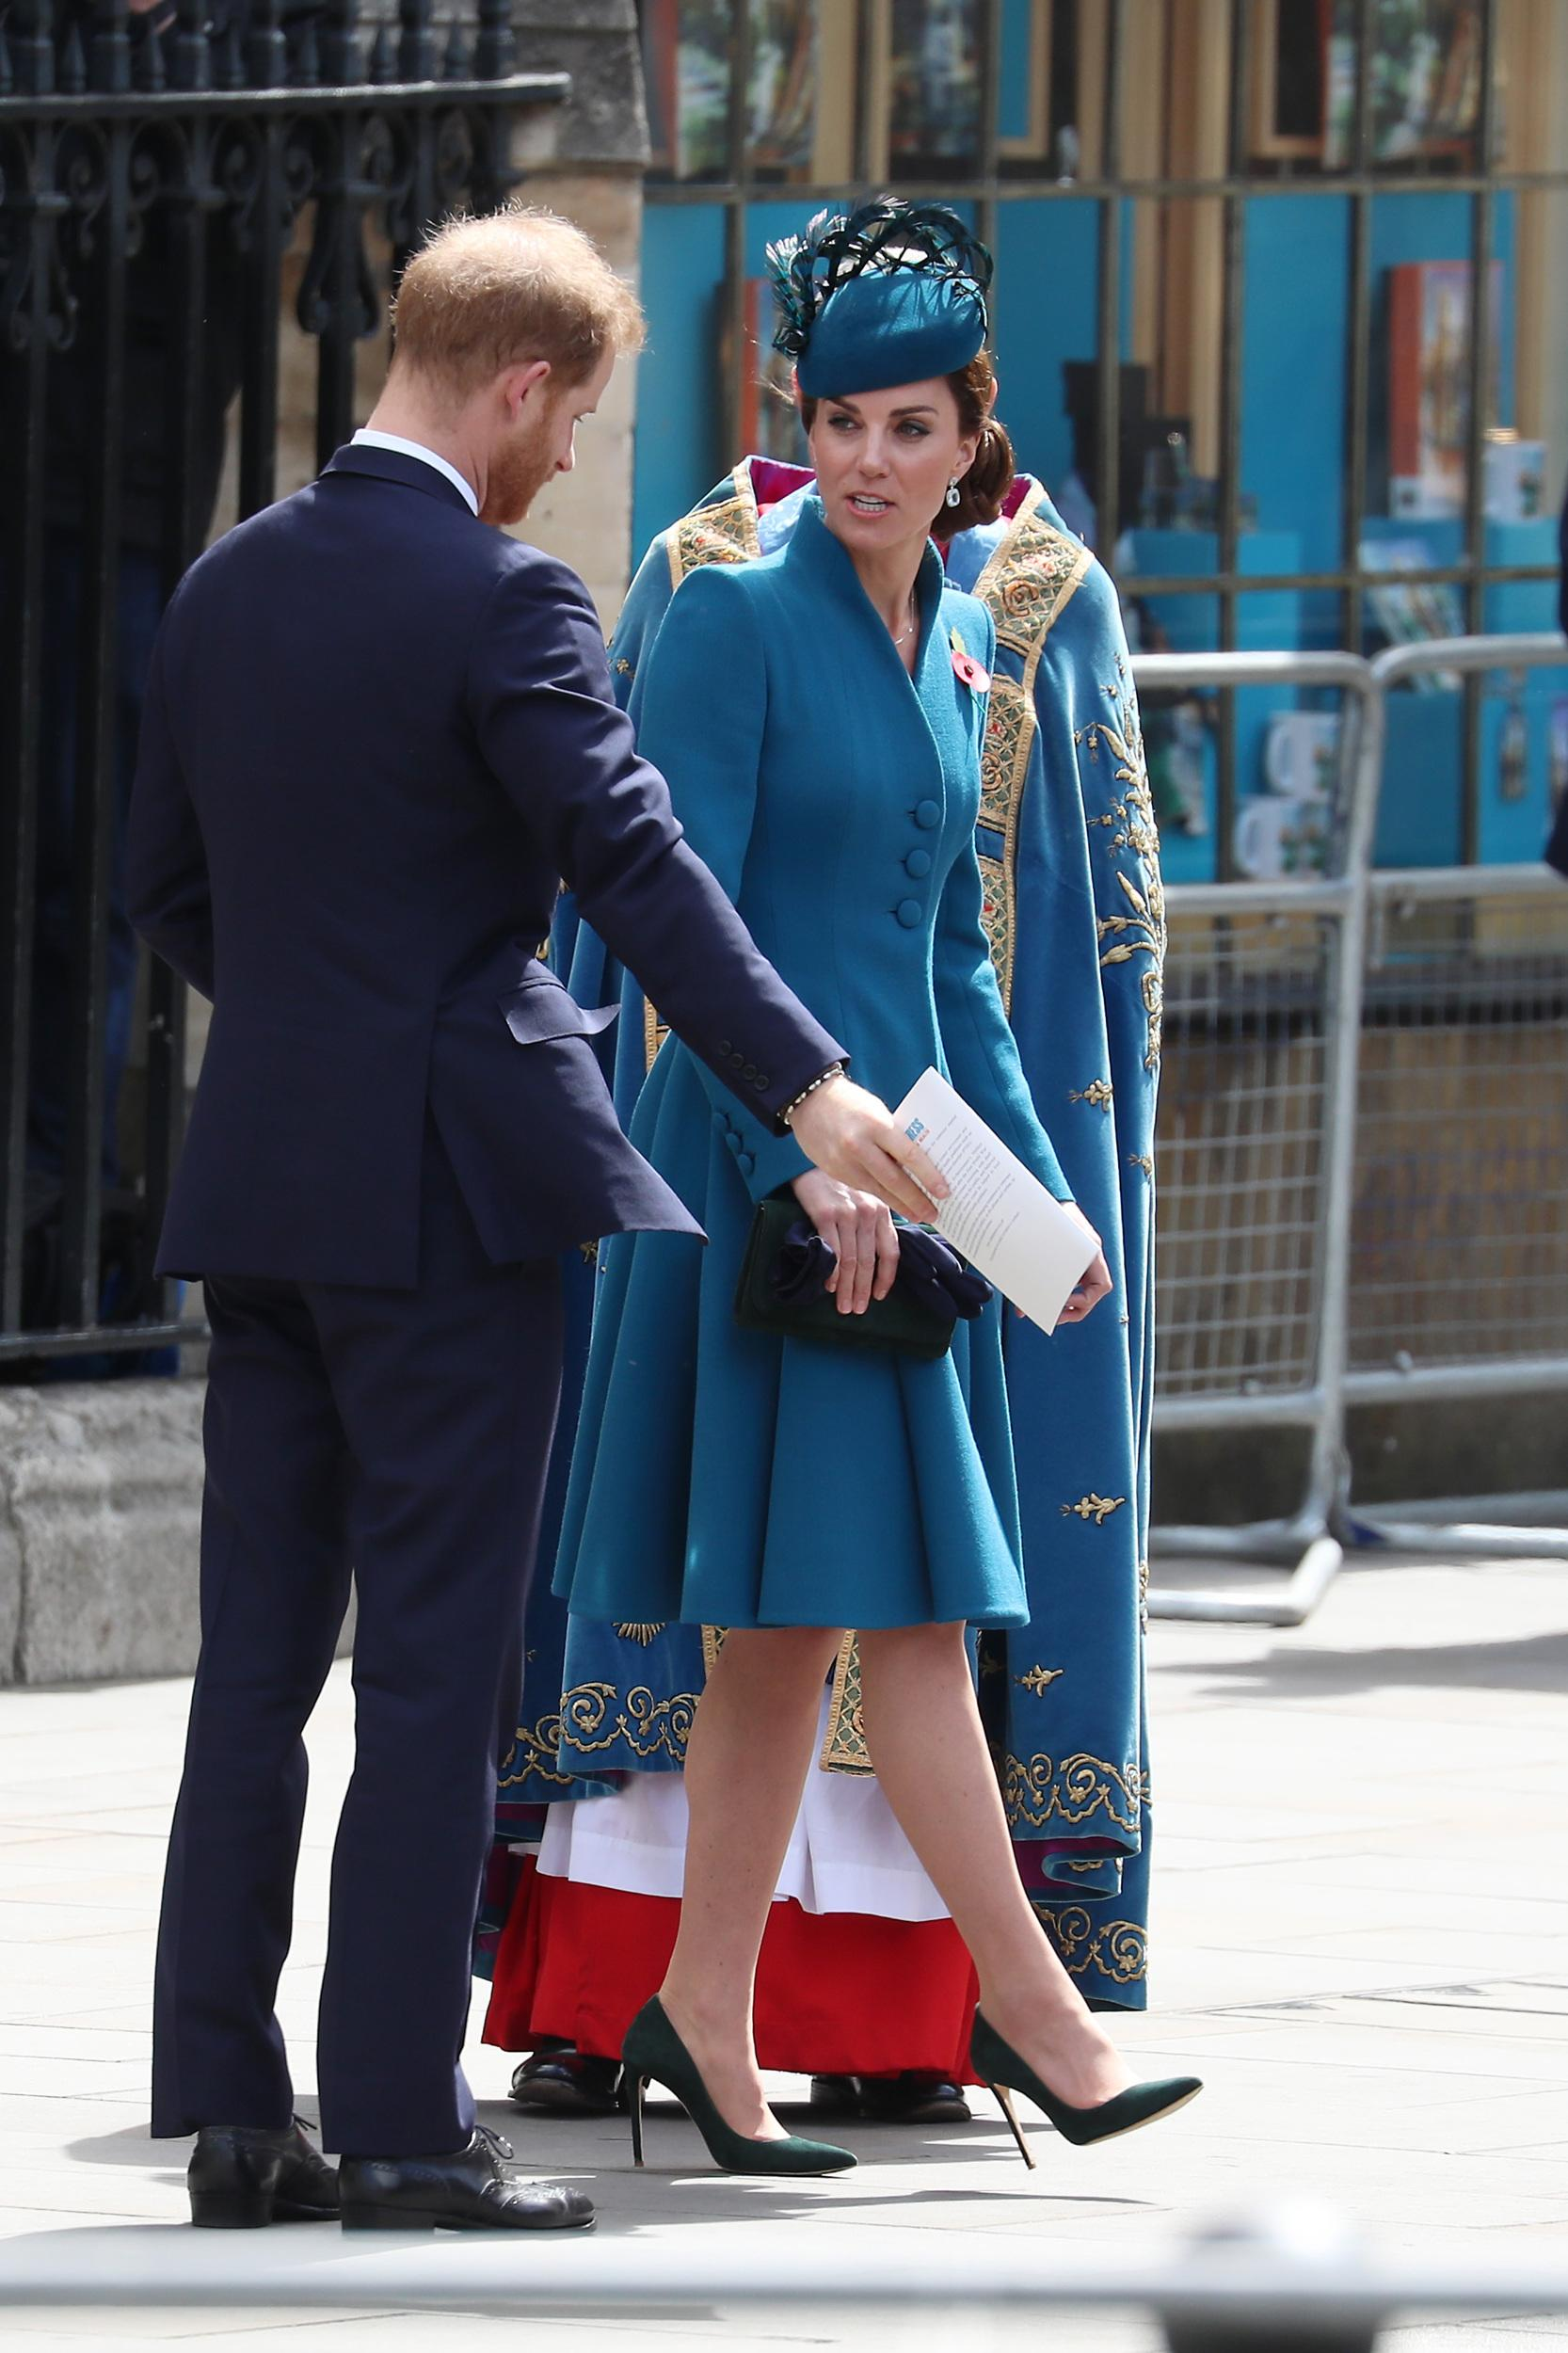 LONDON, ENGLAND - APRIL 25:  Catherine, Duchess of Cambridge and Prince Harry, Duke of Sussex depart the Anzac Day Service at Westminster Abbey on April 25, 2019 in London, England. (Photo by Neil Mockford/GC Images)